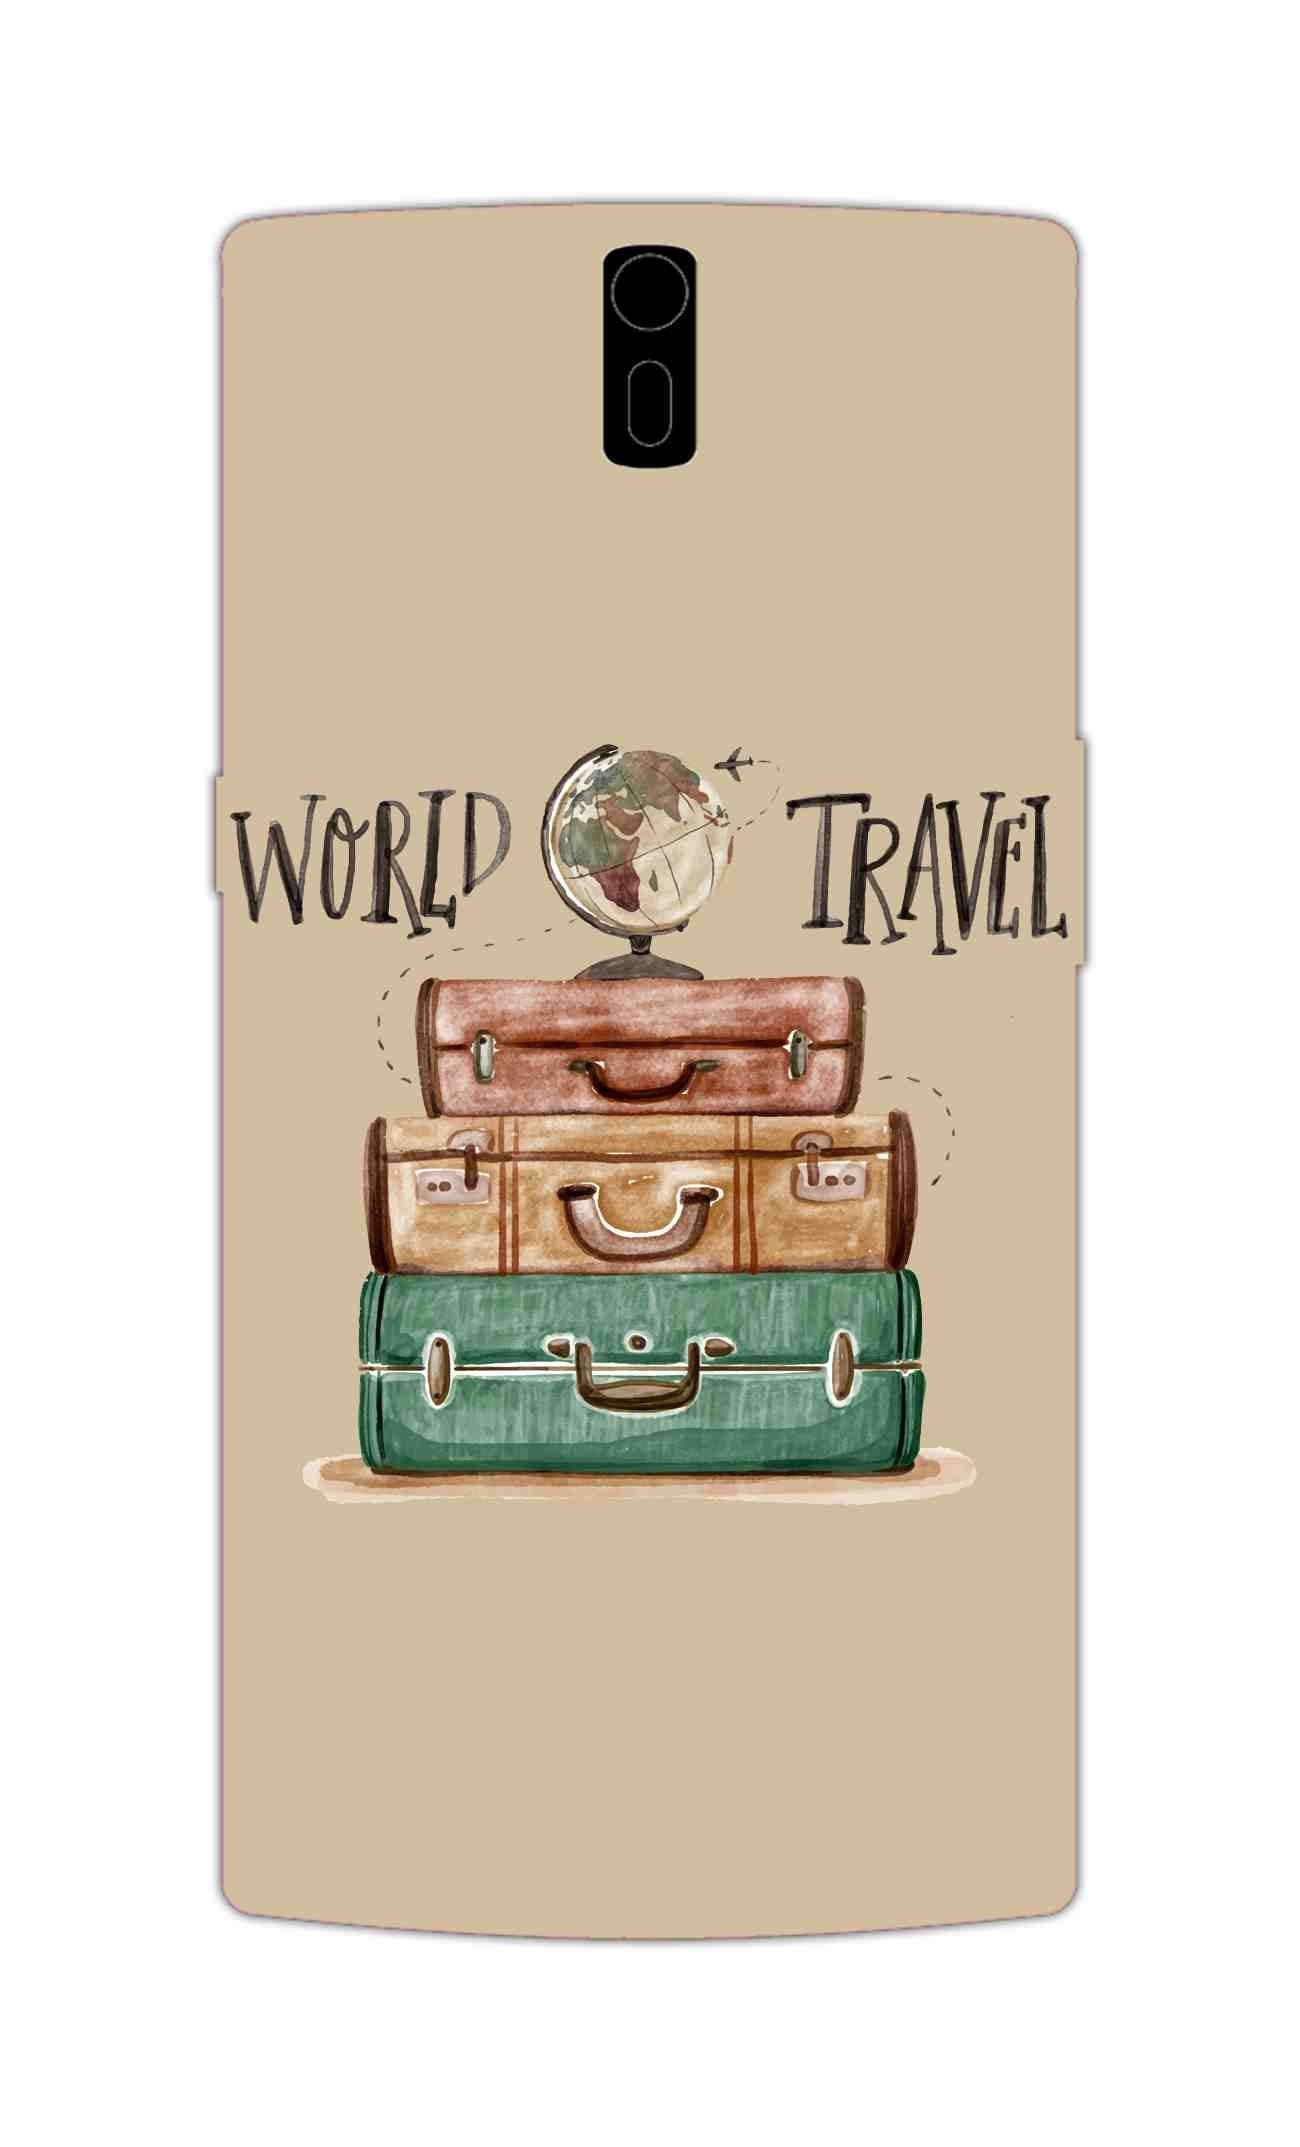 Travel World With Bags For Travellers OnePlus 1 Mobile Cover Case - MADANYU